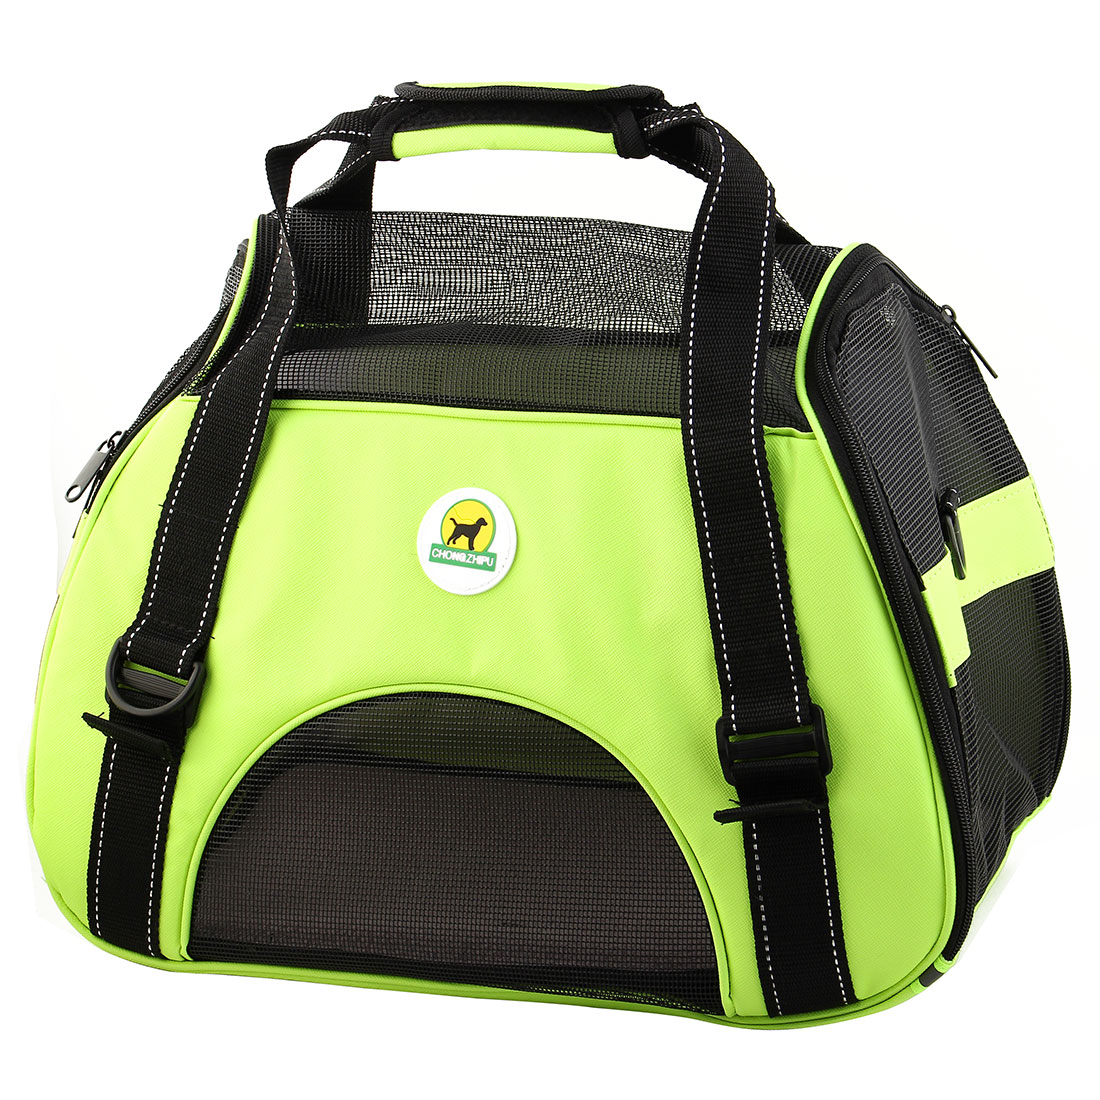 Pet Dog Faux Leather Carrier Travel Tote Trolley Luggage Bag Case Cage Yellow